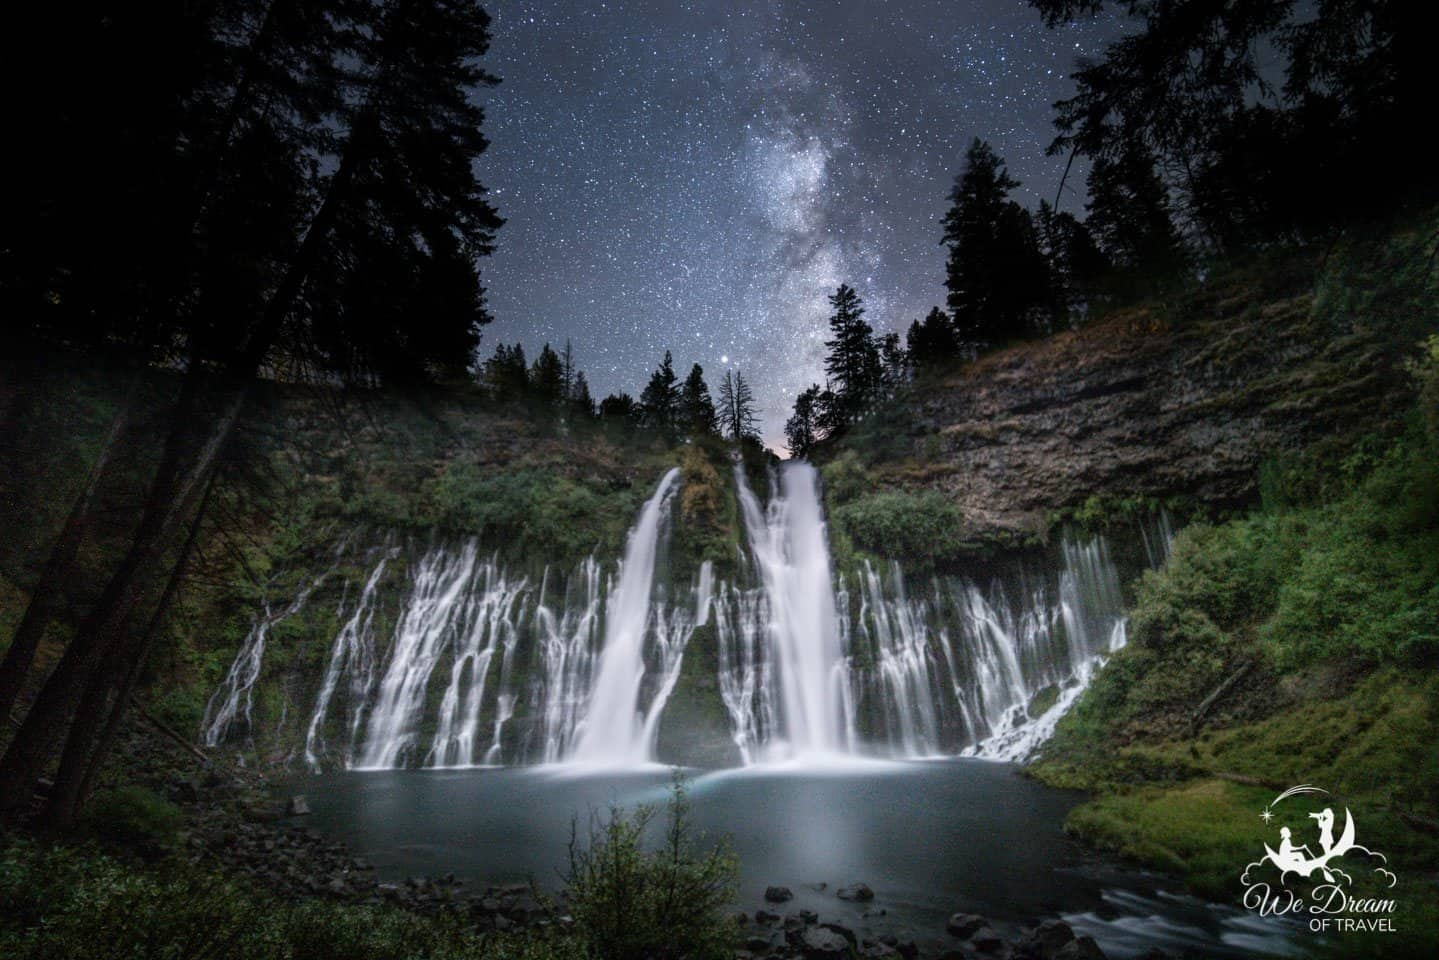 Long exposure waterfall photography at night with the milky way over the waterfall.